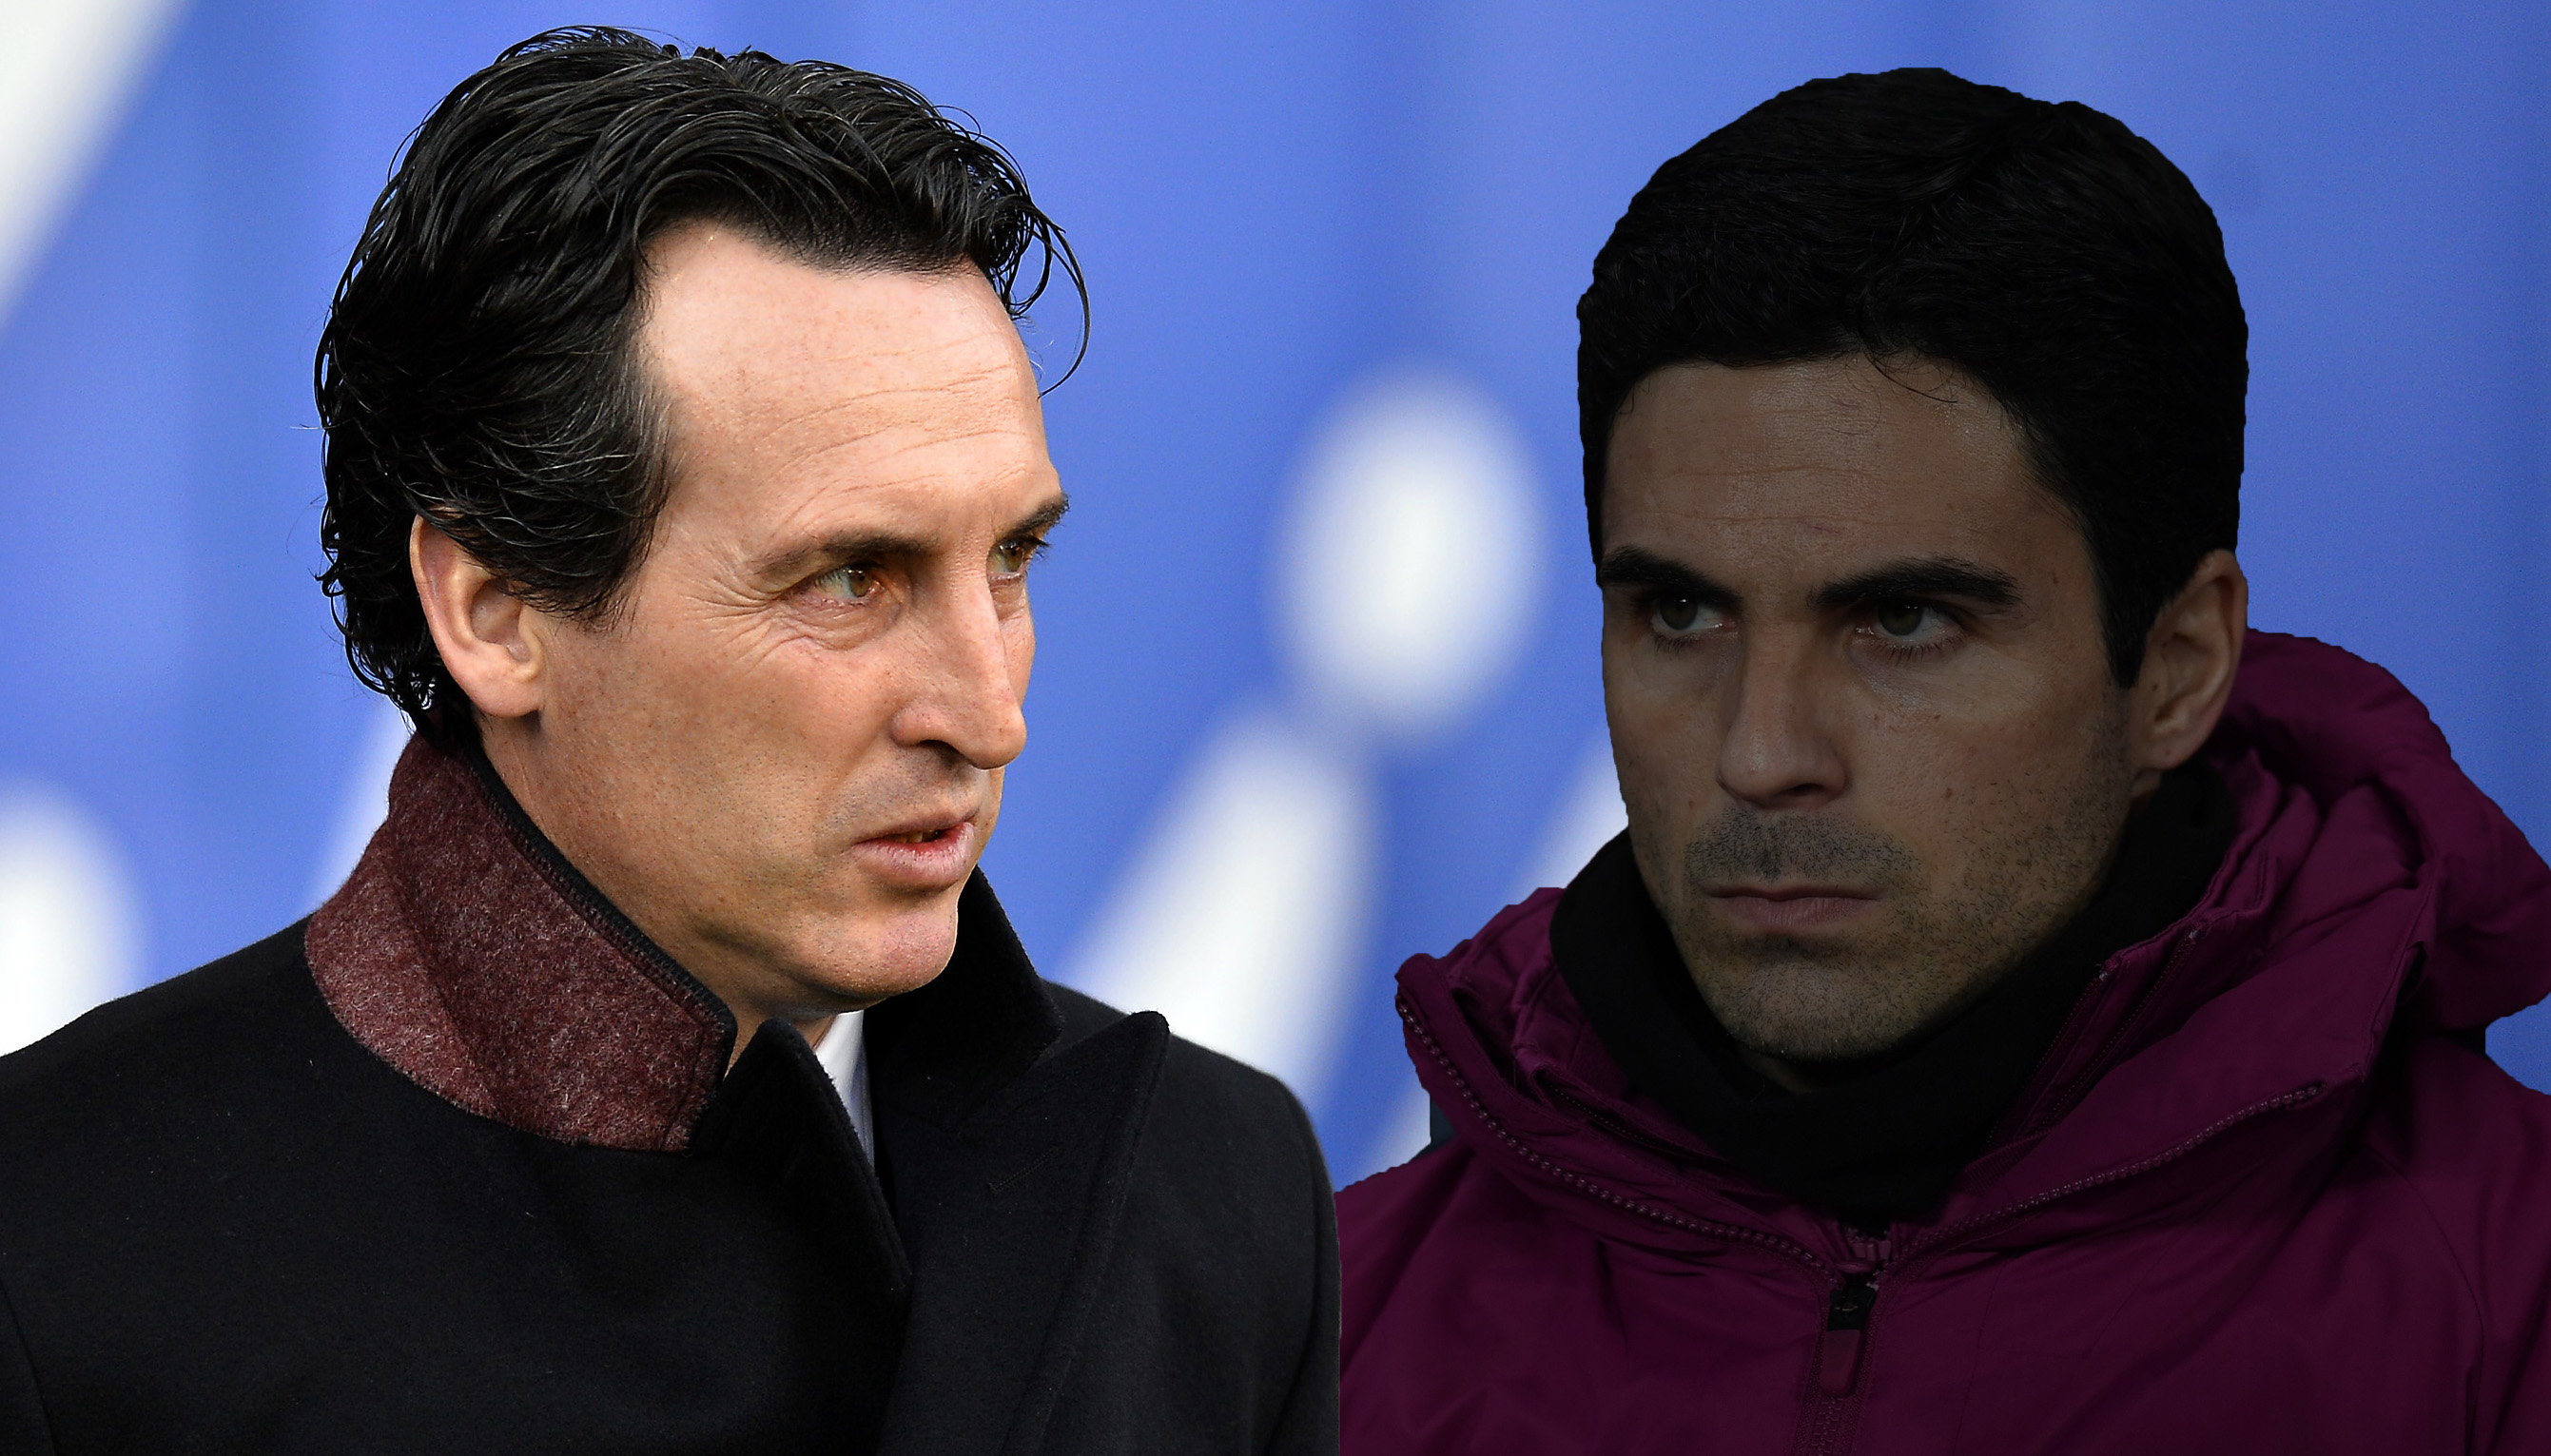 Unai Emery to Arsenal: What can the club expect from new manager?